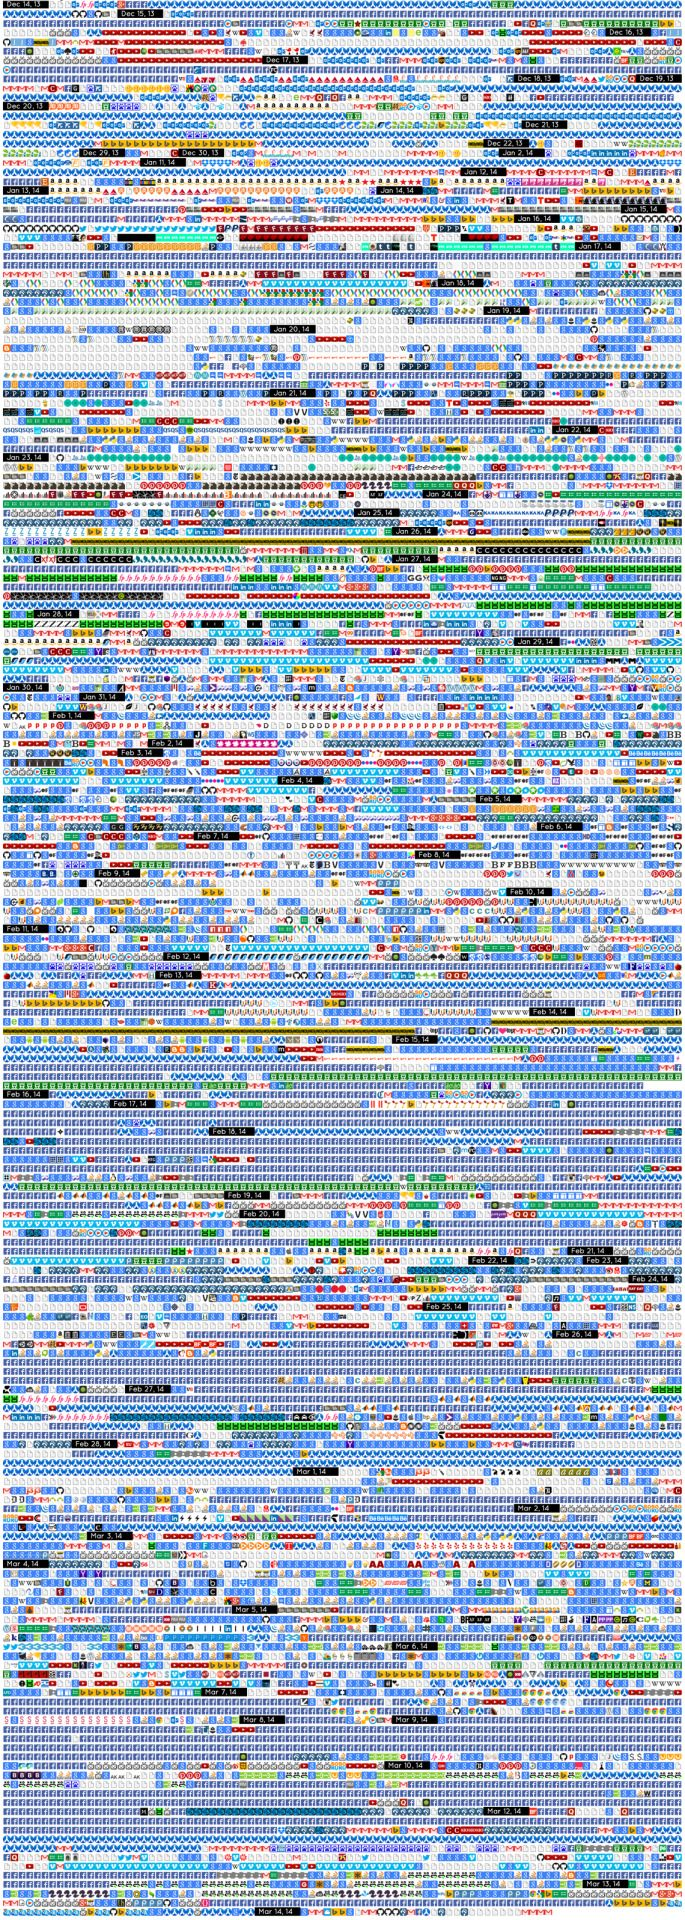 Iconic History is a Chrome extension that visualizes your